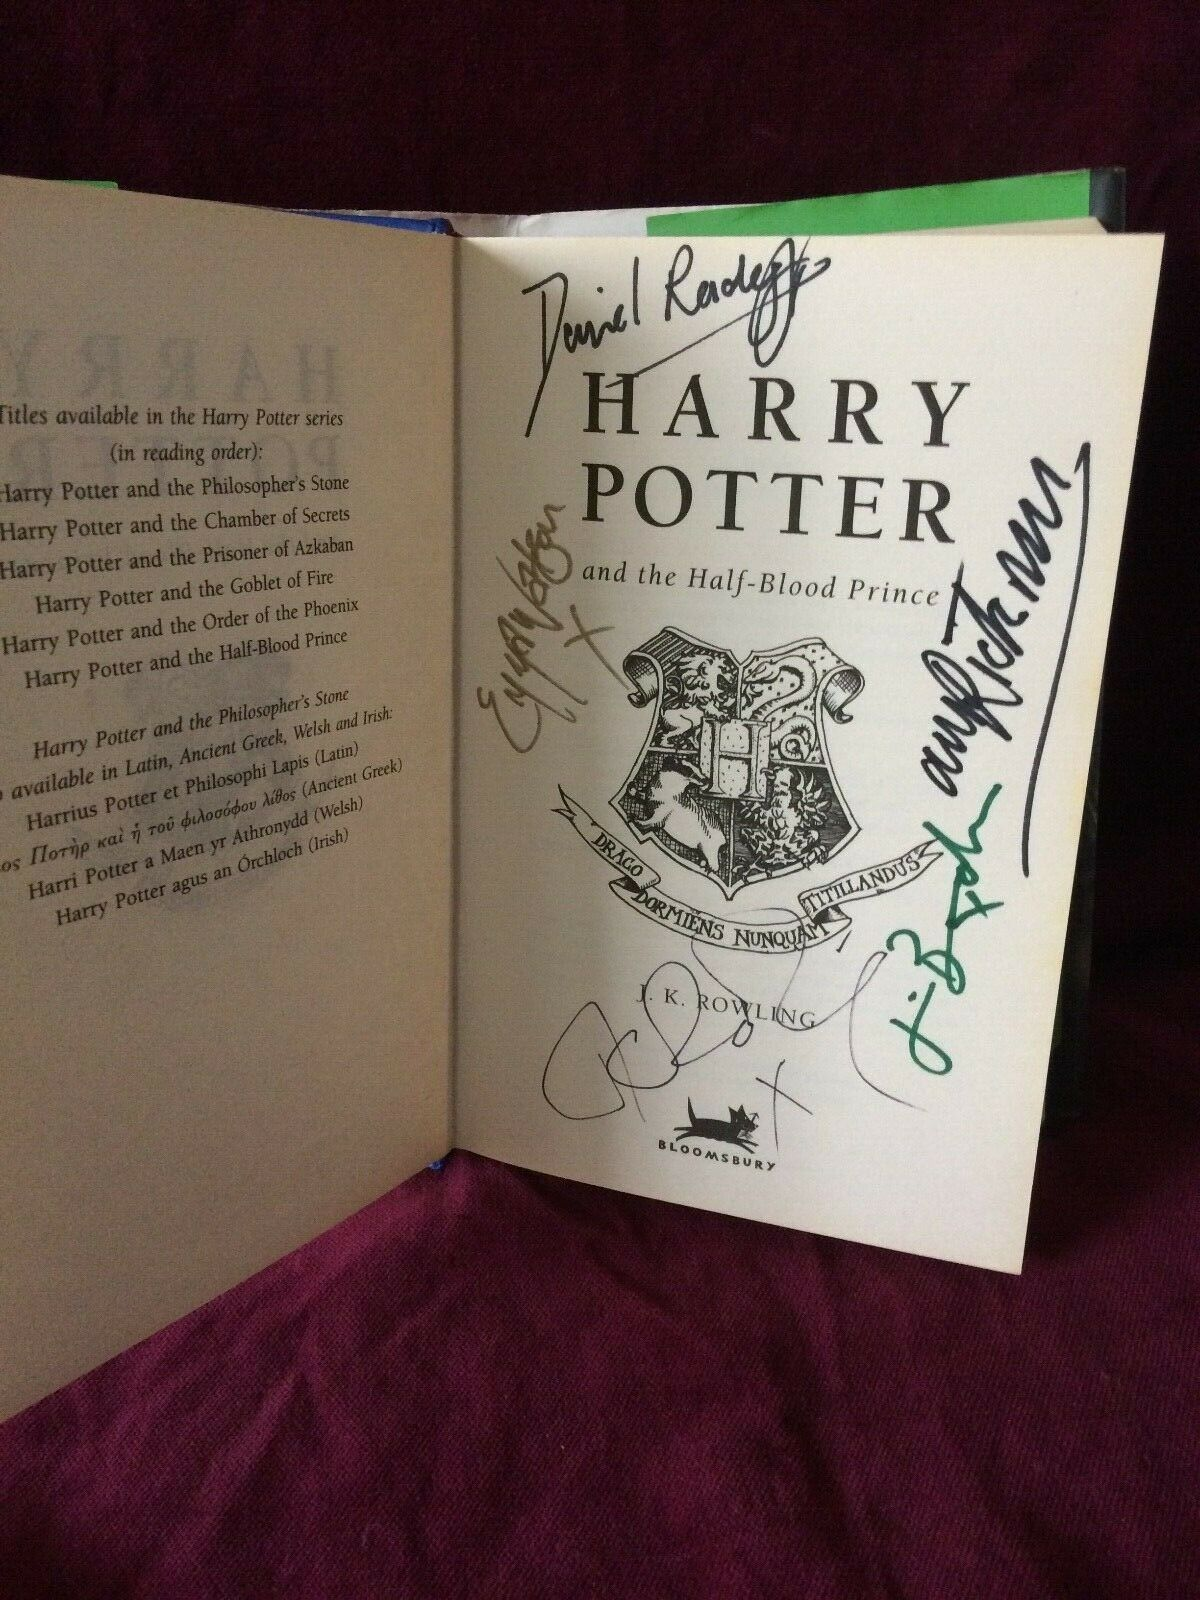 J.K. Rowling and cast signature forgeries found inside a Harry Potter and the Half-Blood Prince on eBay. Sold by Dollpainte-0 for 270 GBP.